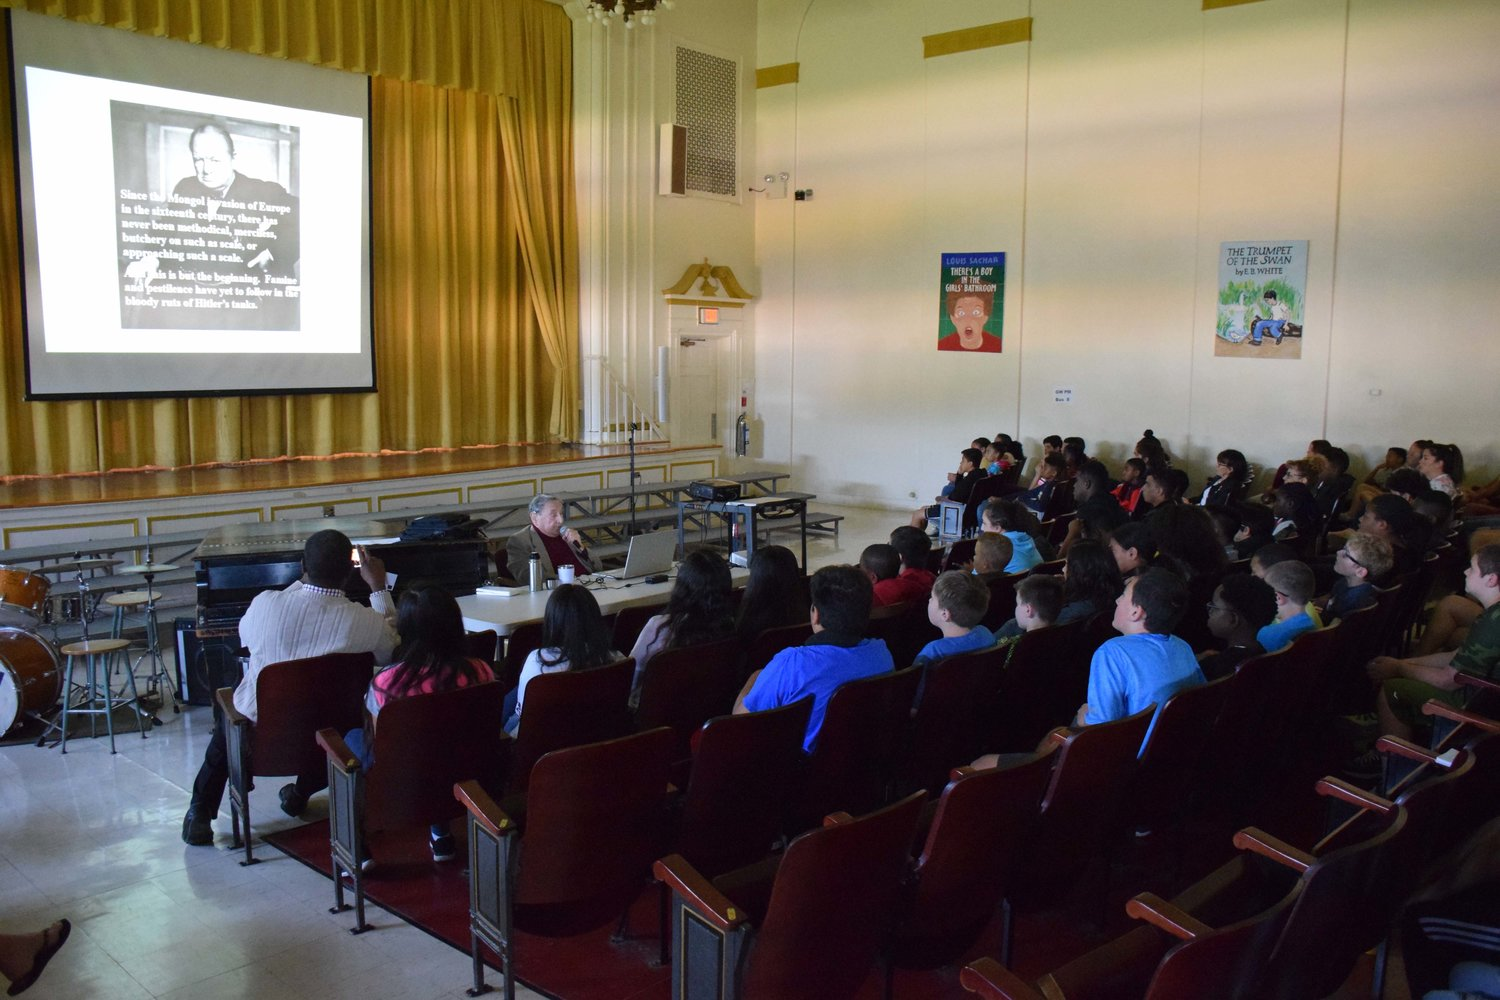 George Washington Elementary School sixth graders listened to a presentation from Holocaust survivor Werner Reich on June 4.